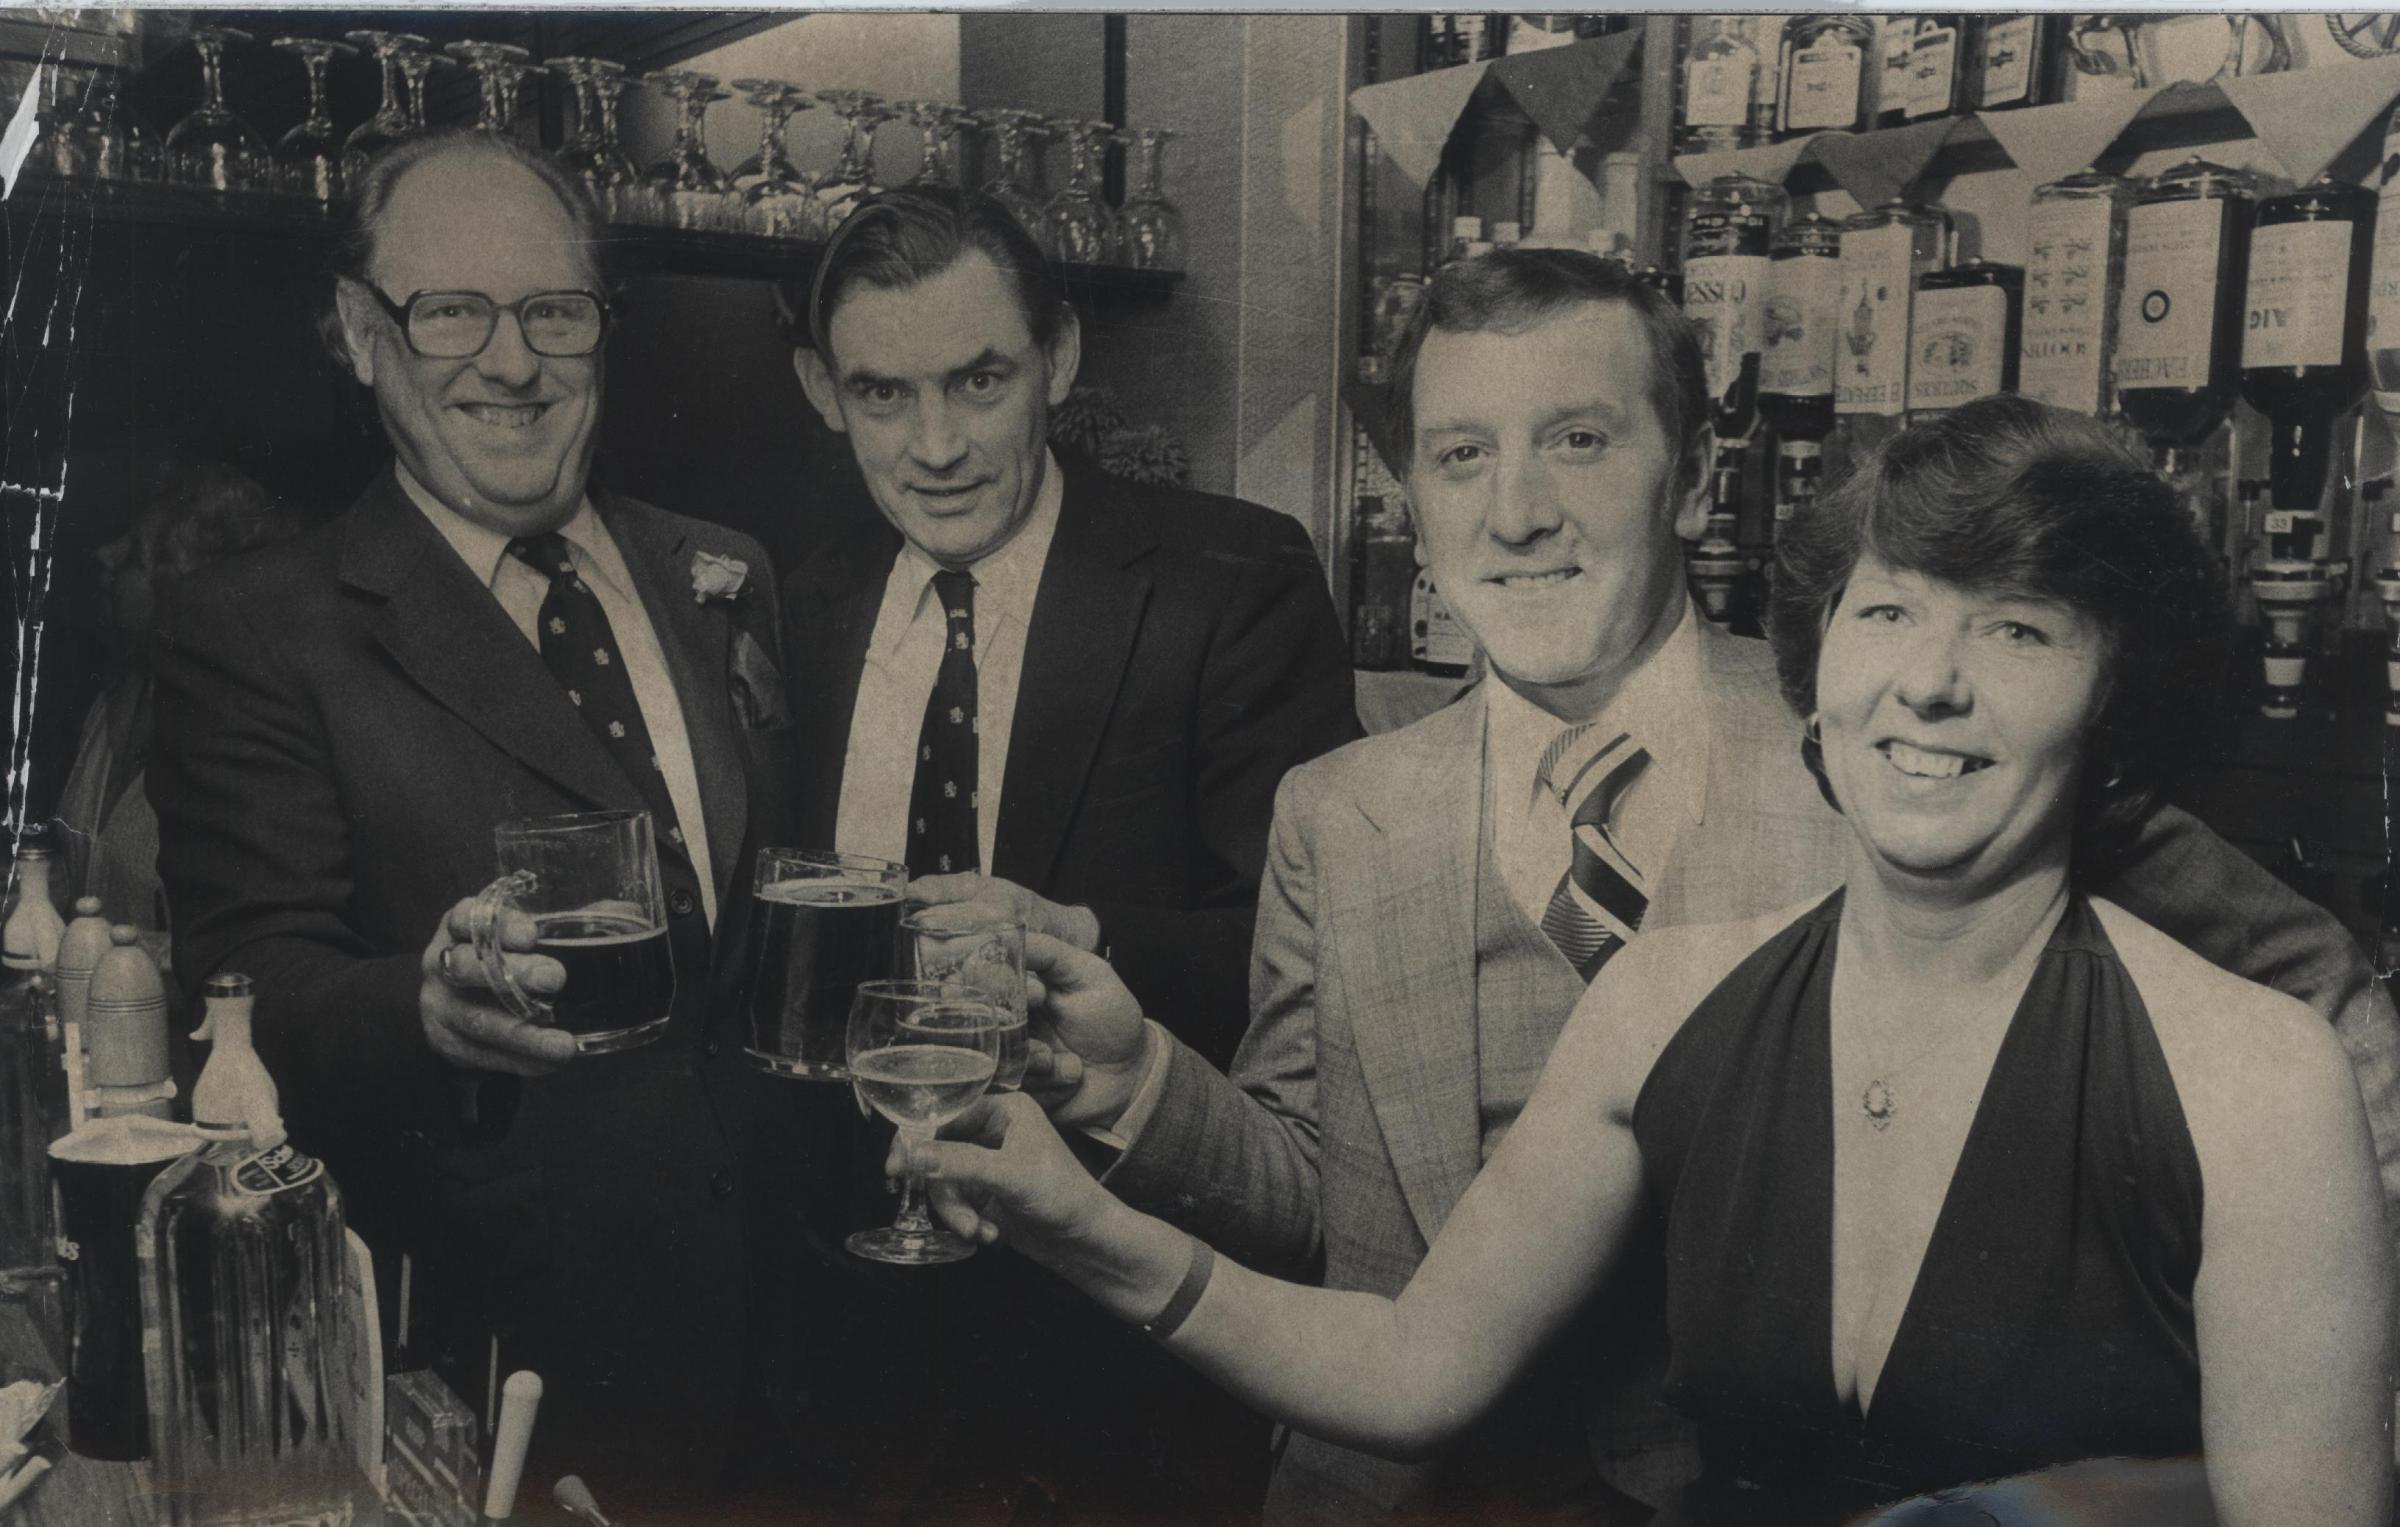 Toasting the reopening of The Carpenters in Botley were (from left) tied trade manager Tom Hall, managing director Tony Worth, landlord Don Bell and landlady Olga Bell